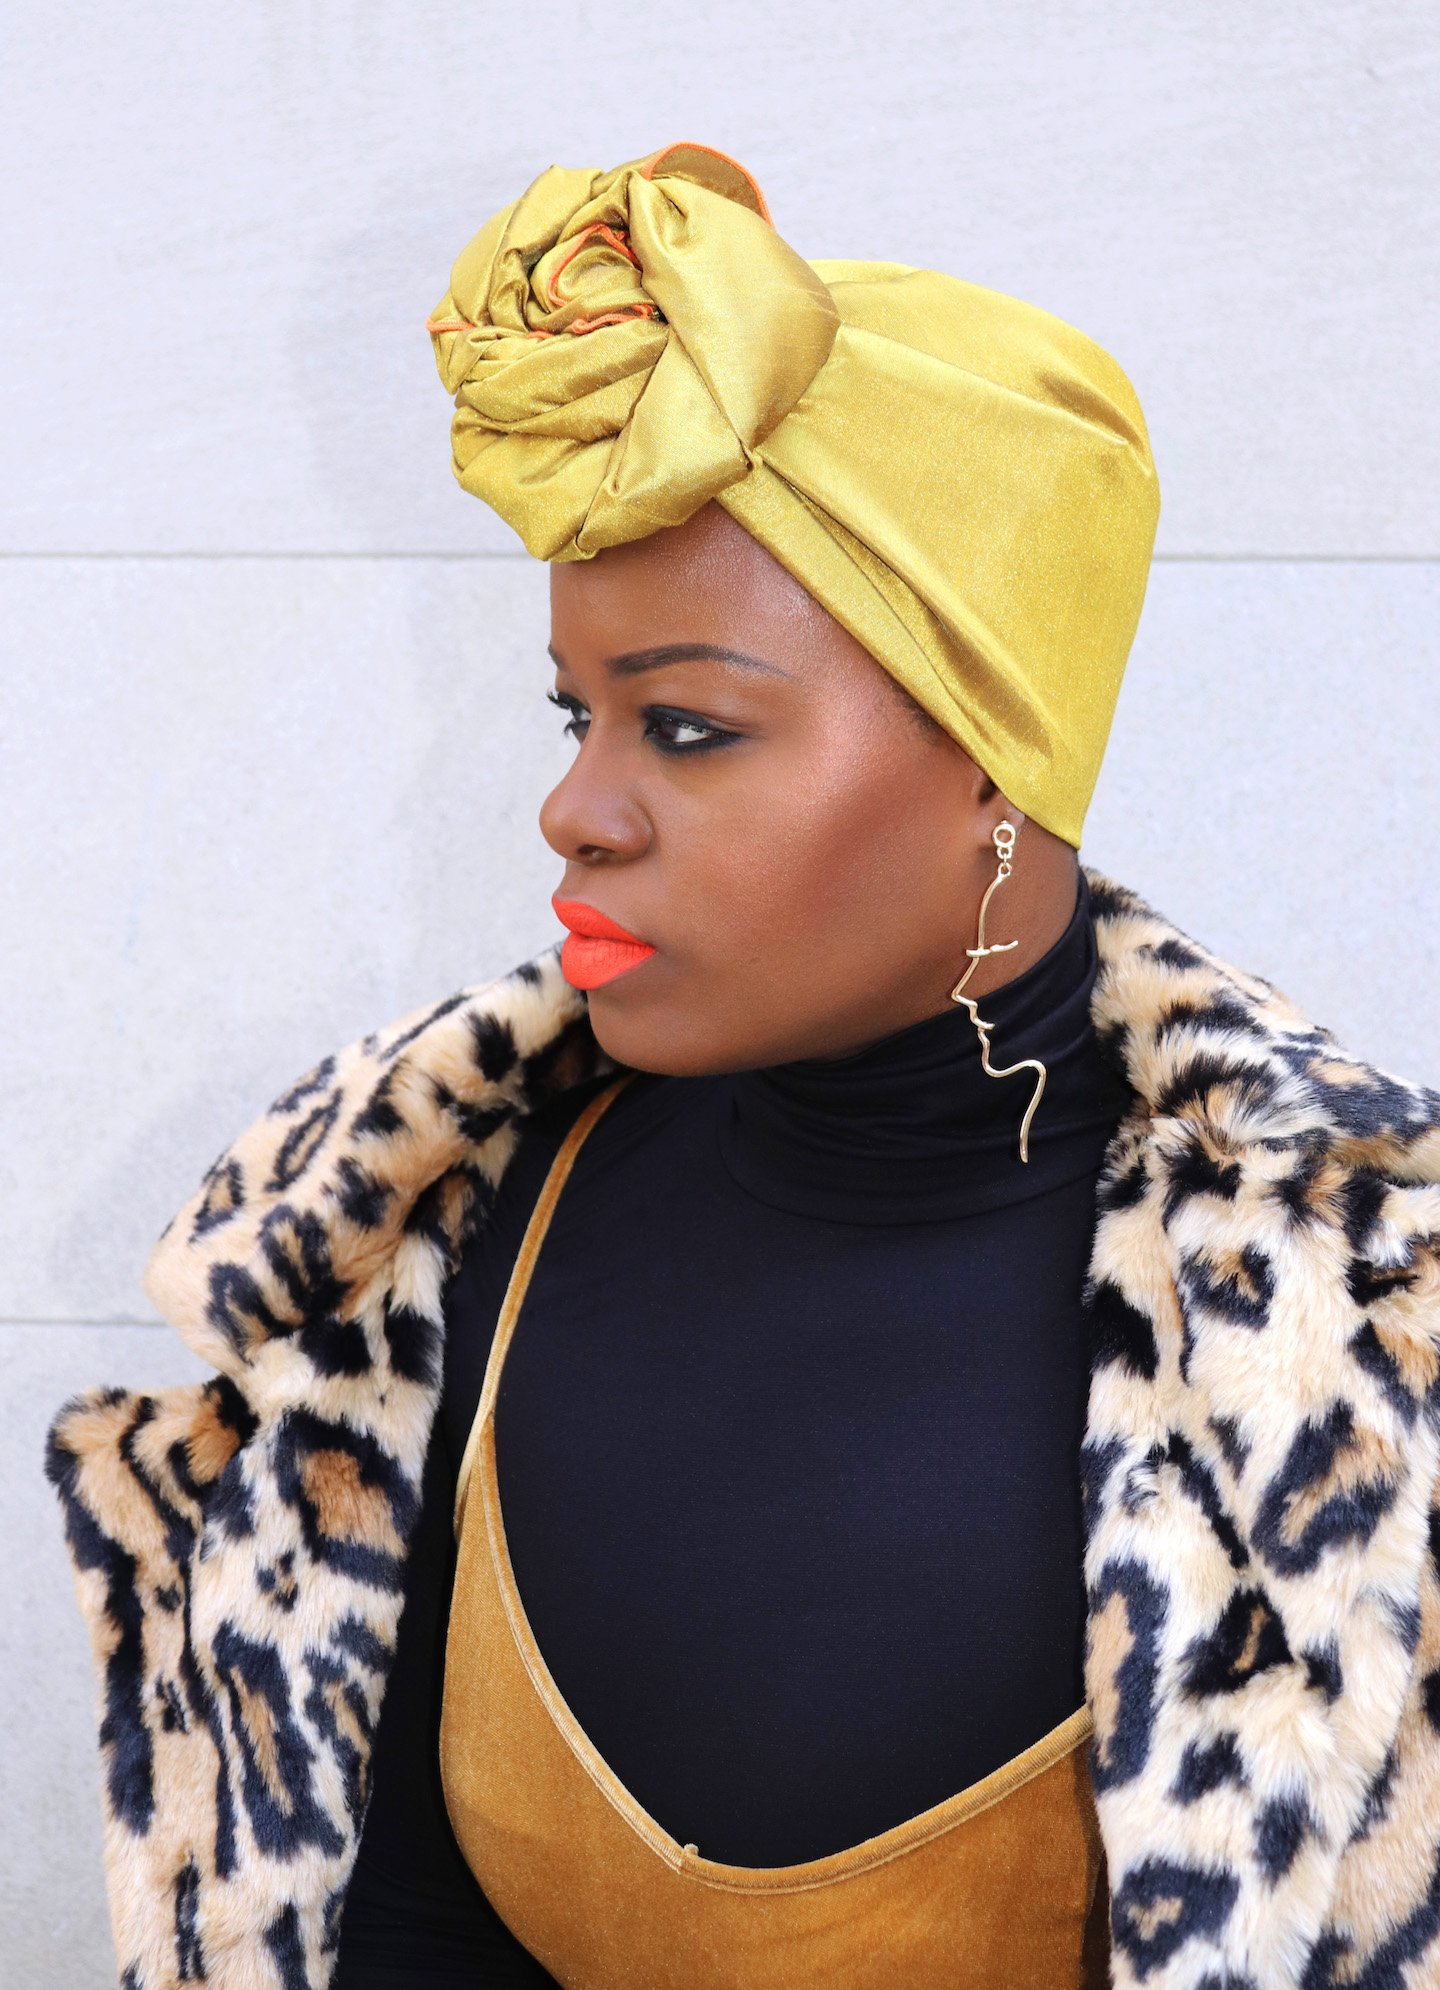 Tropic Isle Sunset of Africa Headwrap + MAC Quite The Stand Out Lipstick